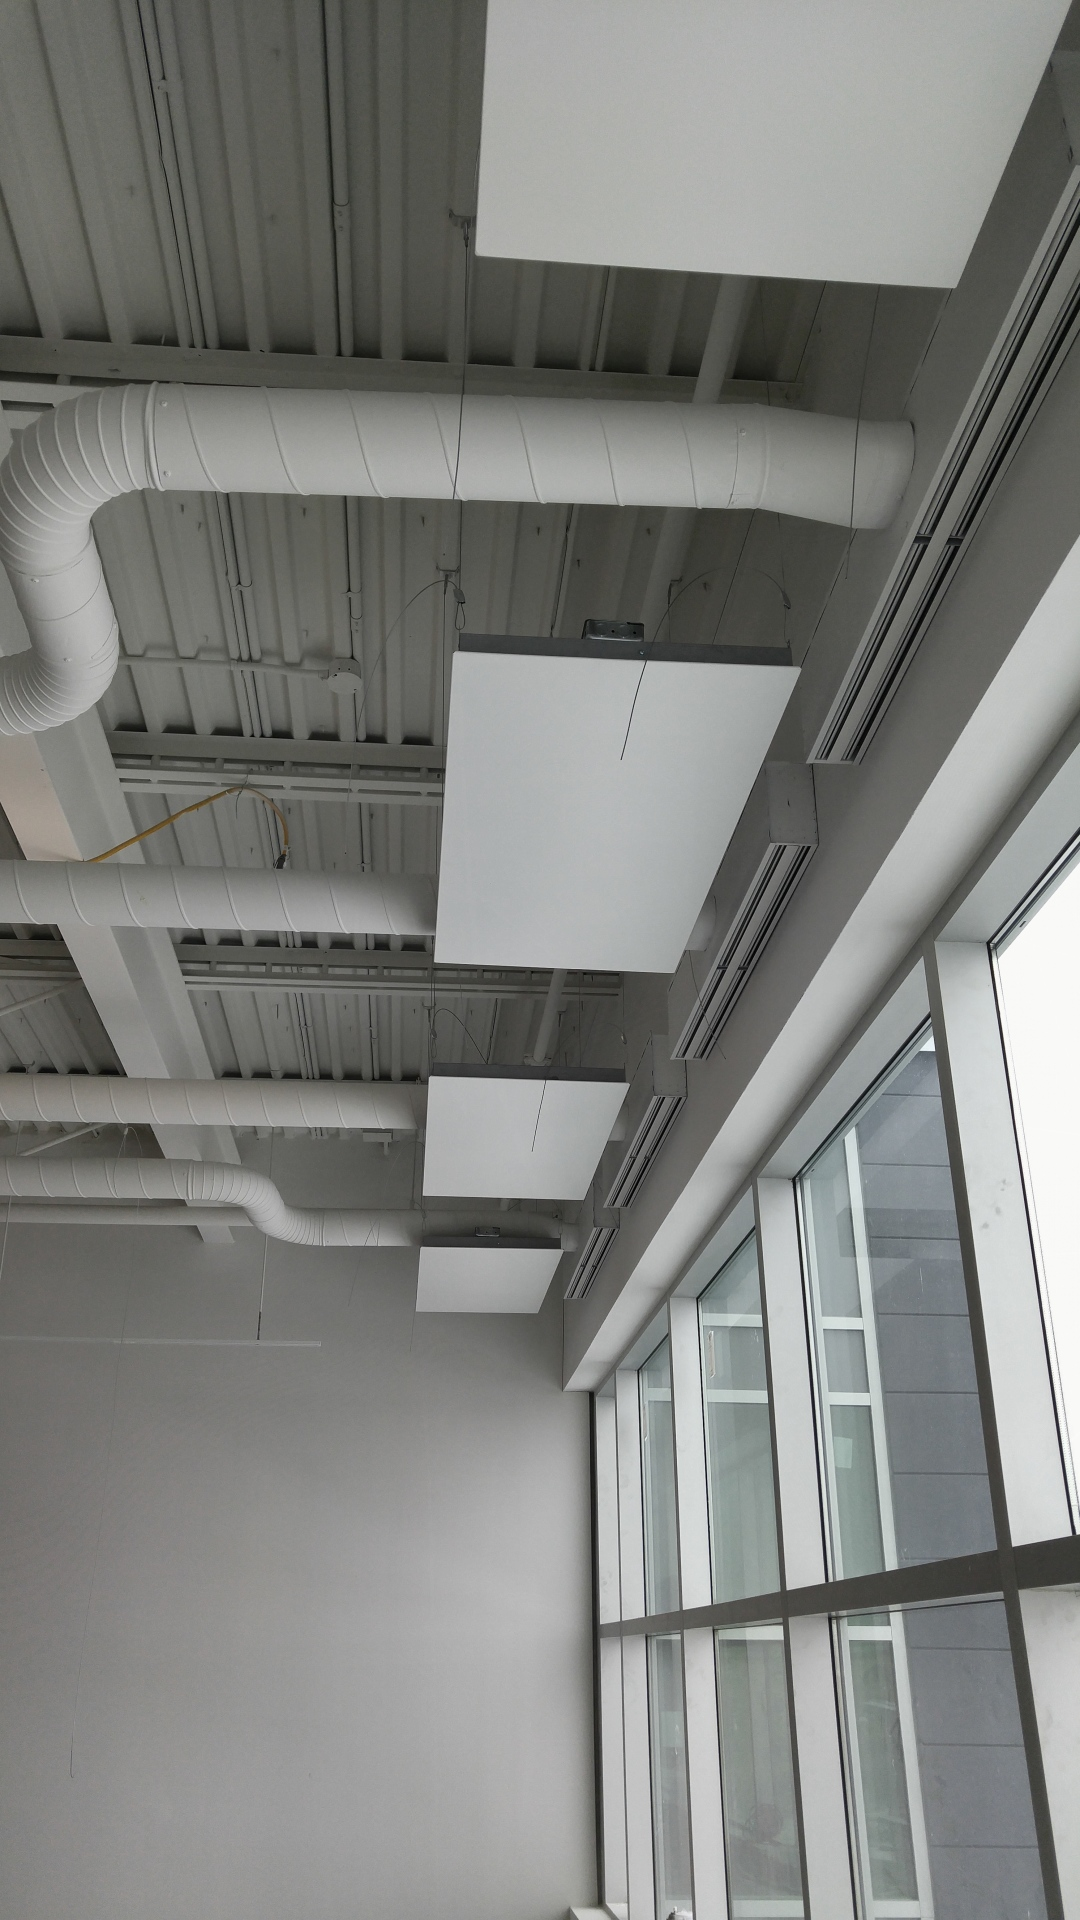 Perimeter-Heating-Panels